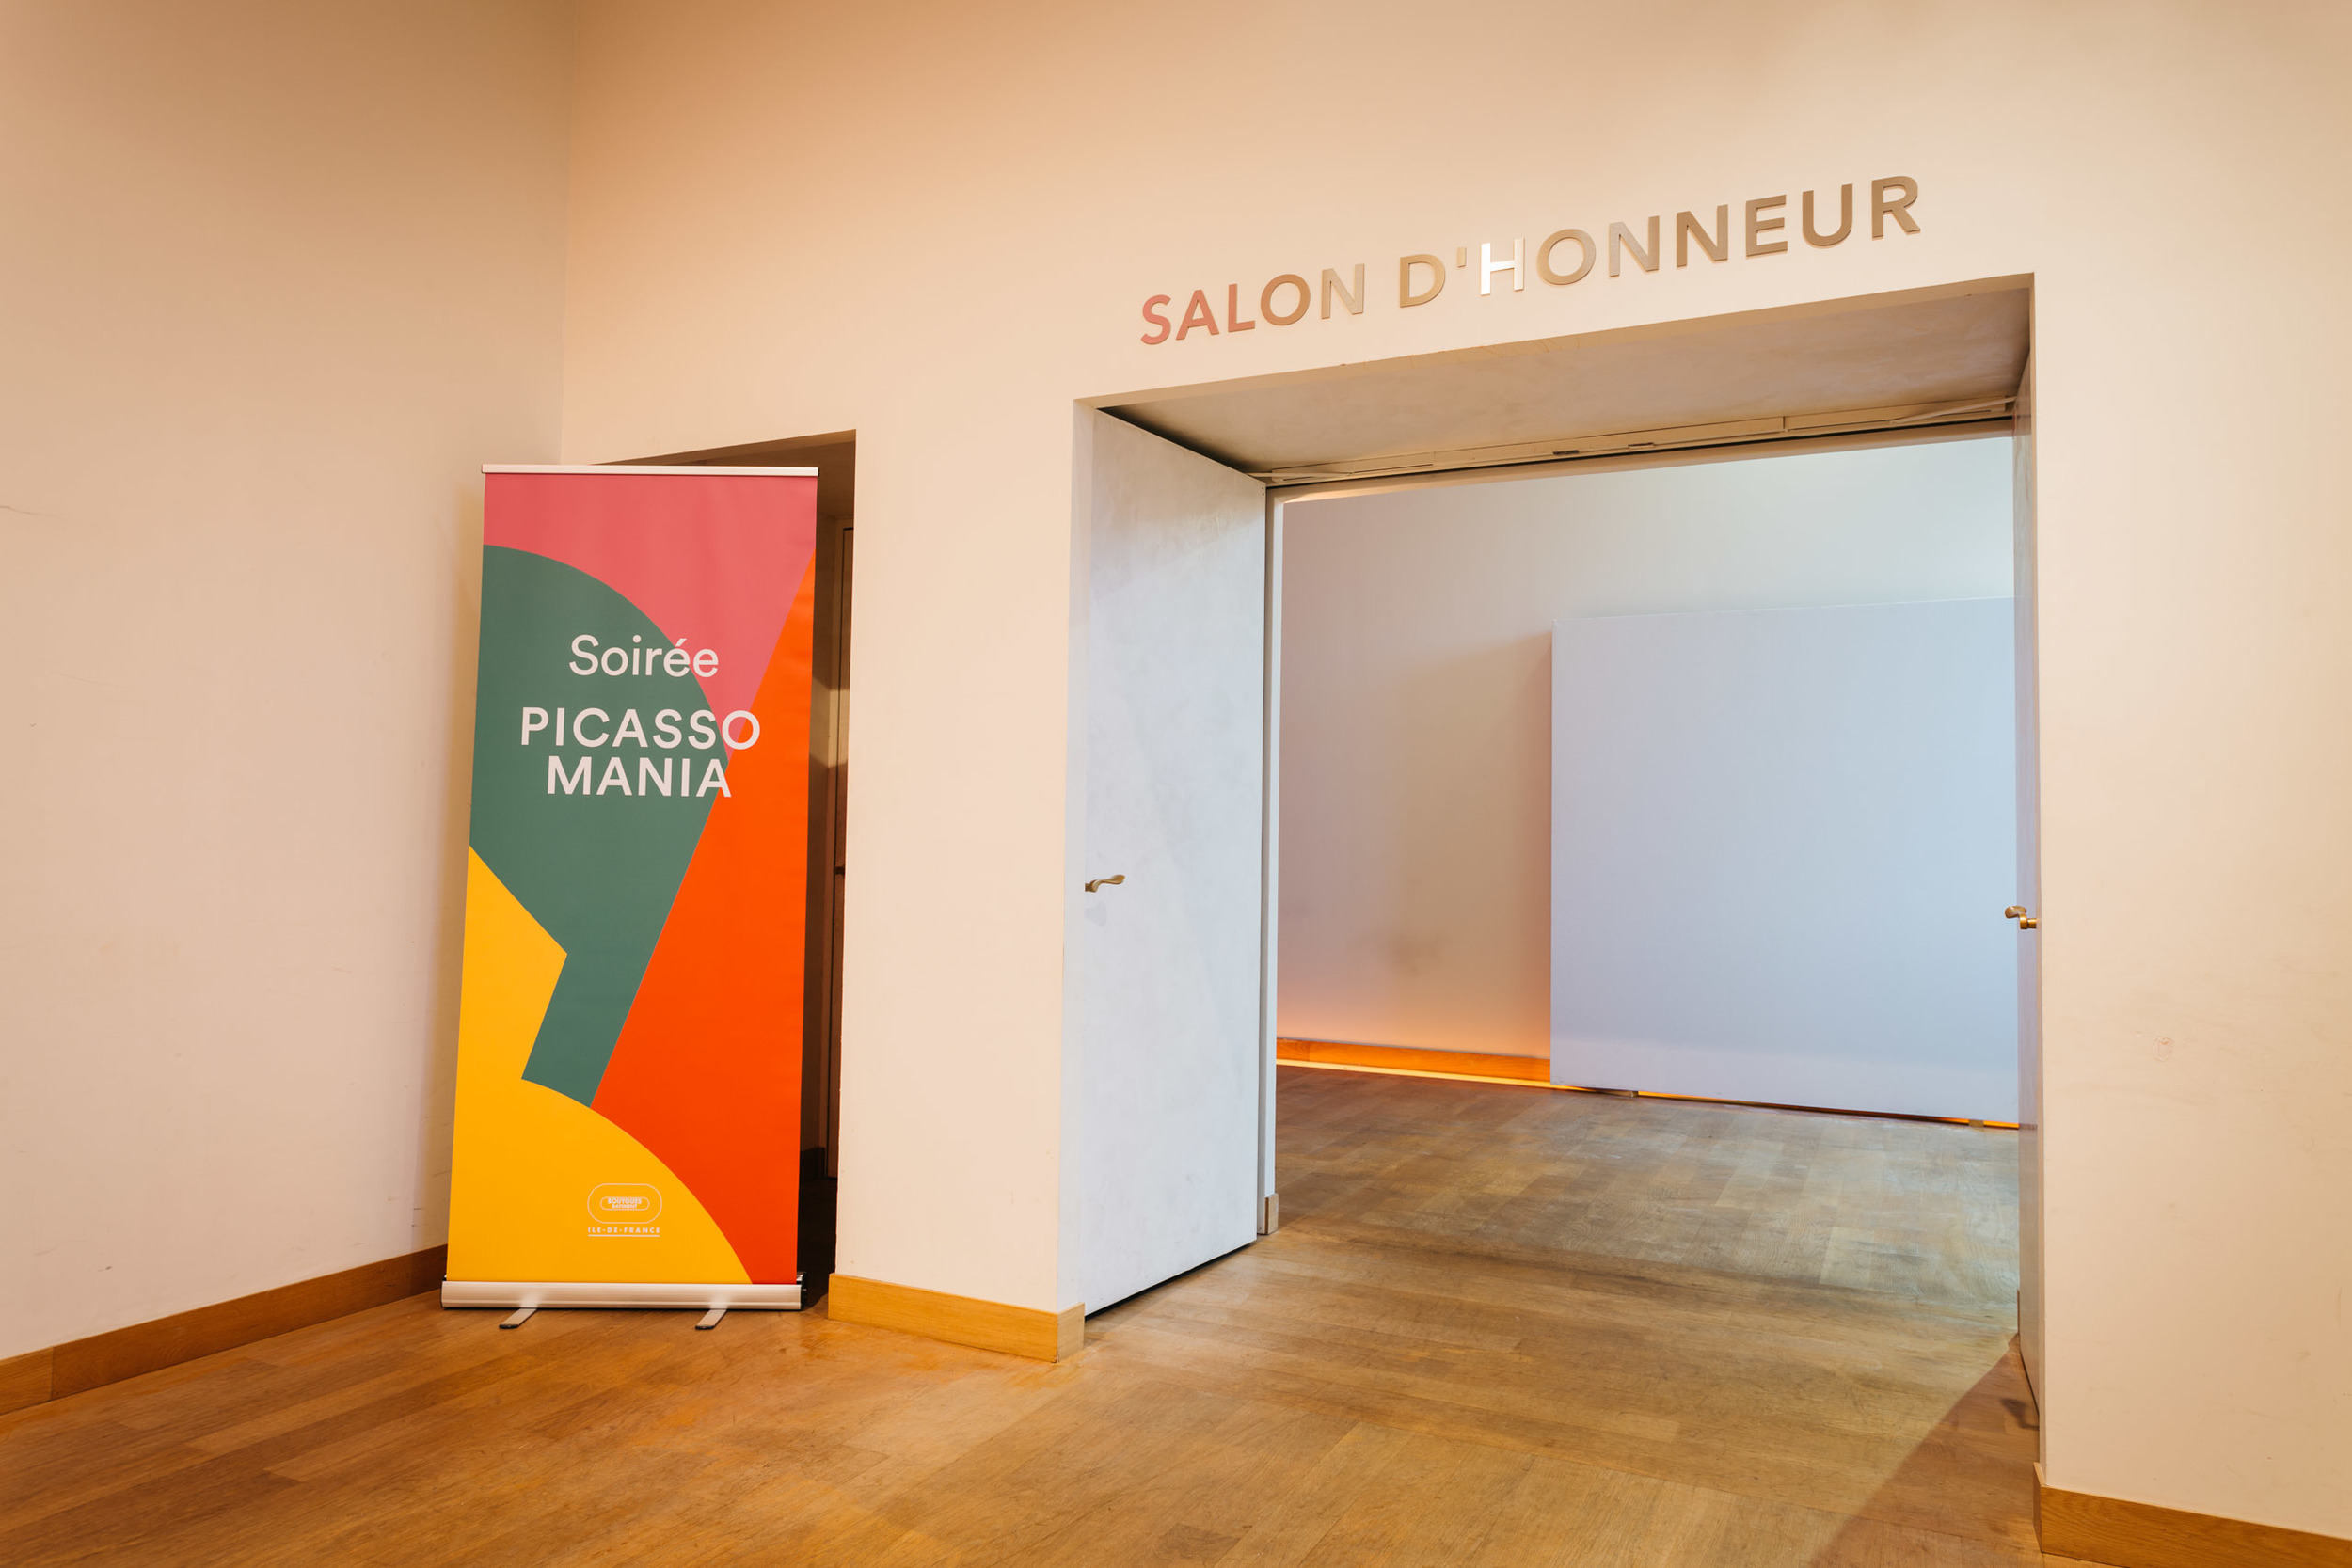 2015-10-09, Bouygues chez Picasso-30.jpg